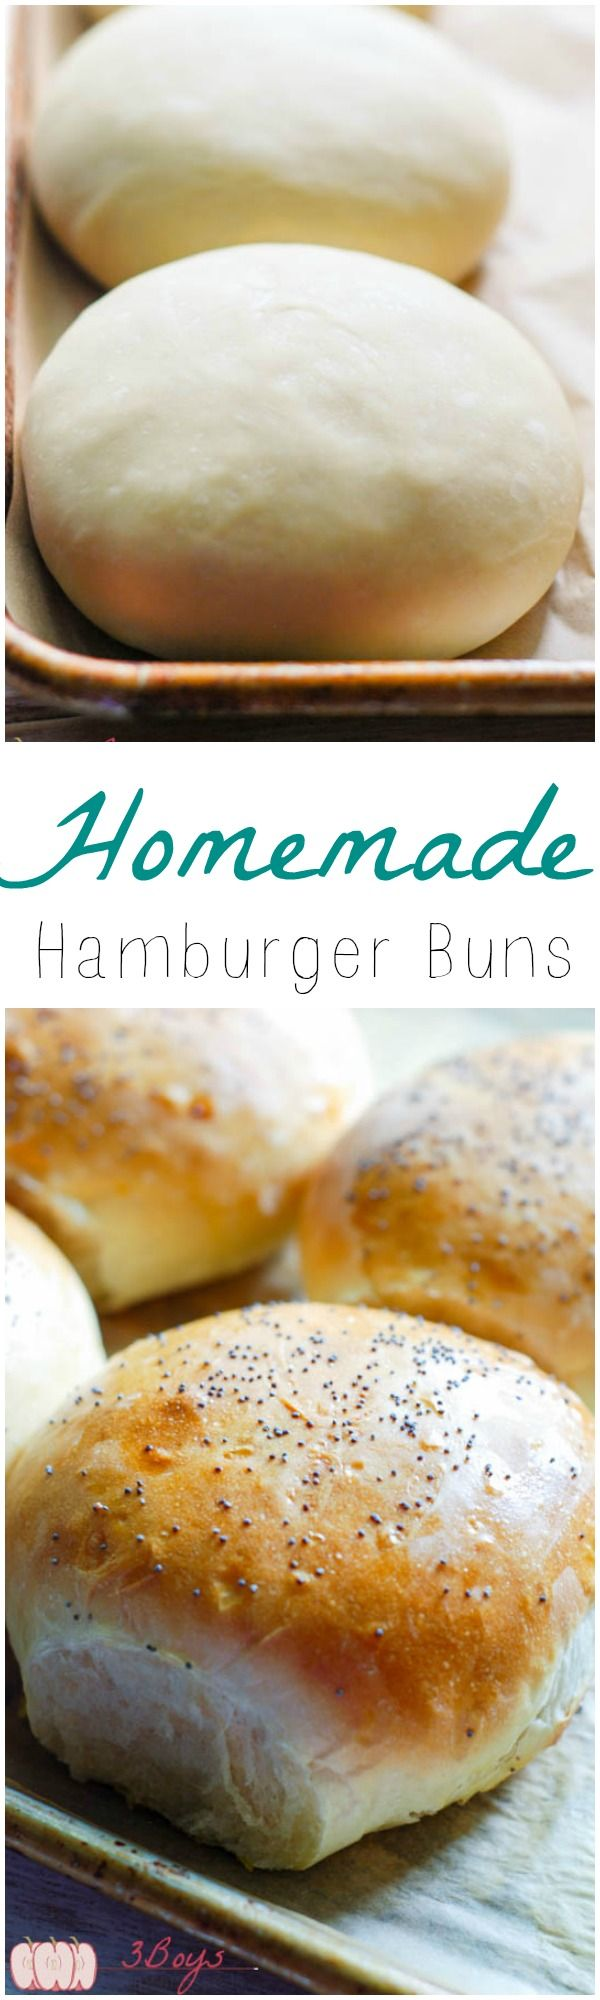 Easy Homemade Hamburger Buns just in time for summer grilling! @3BoysUnprocess